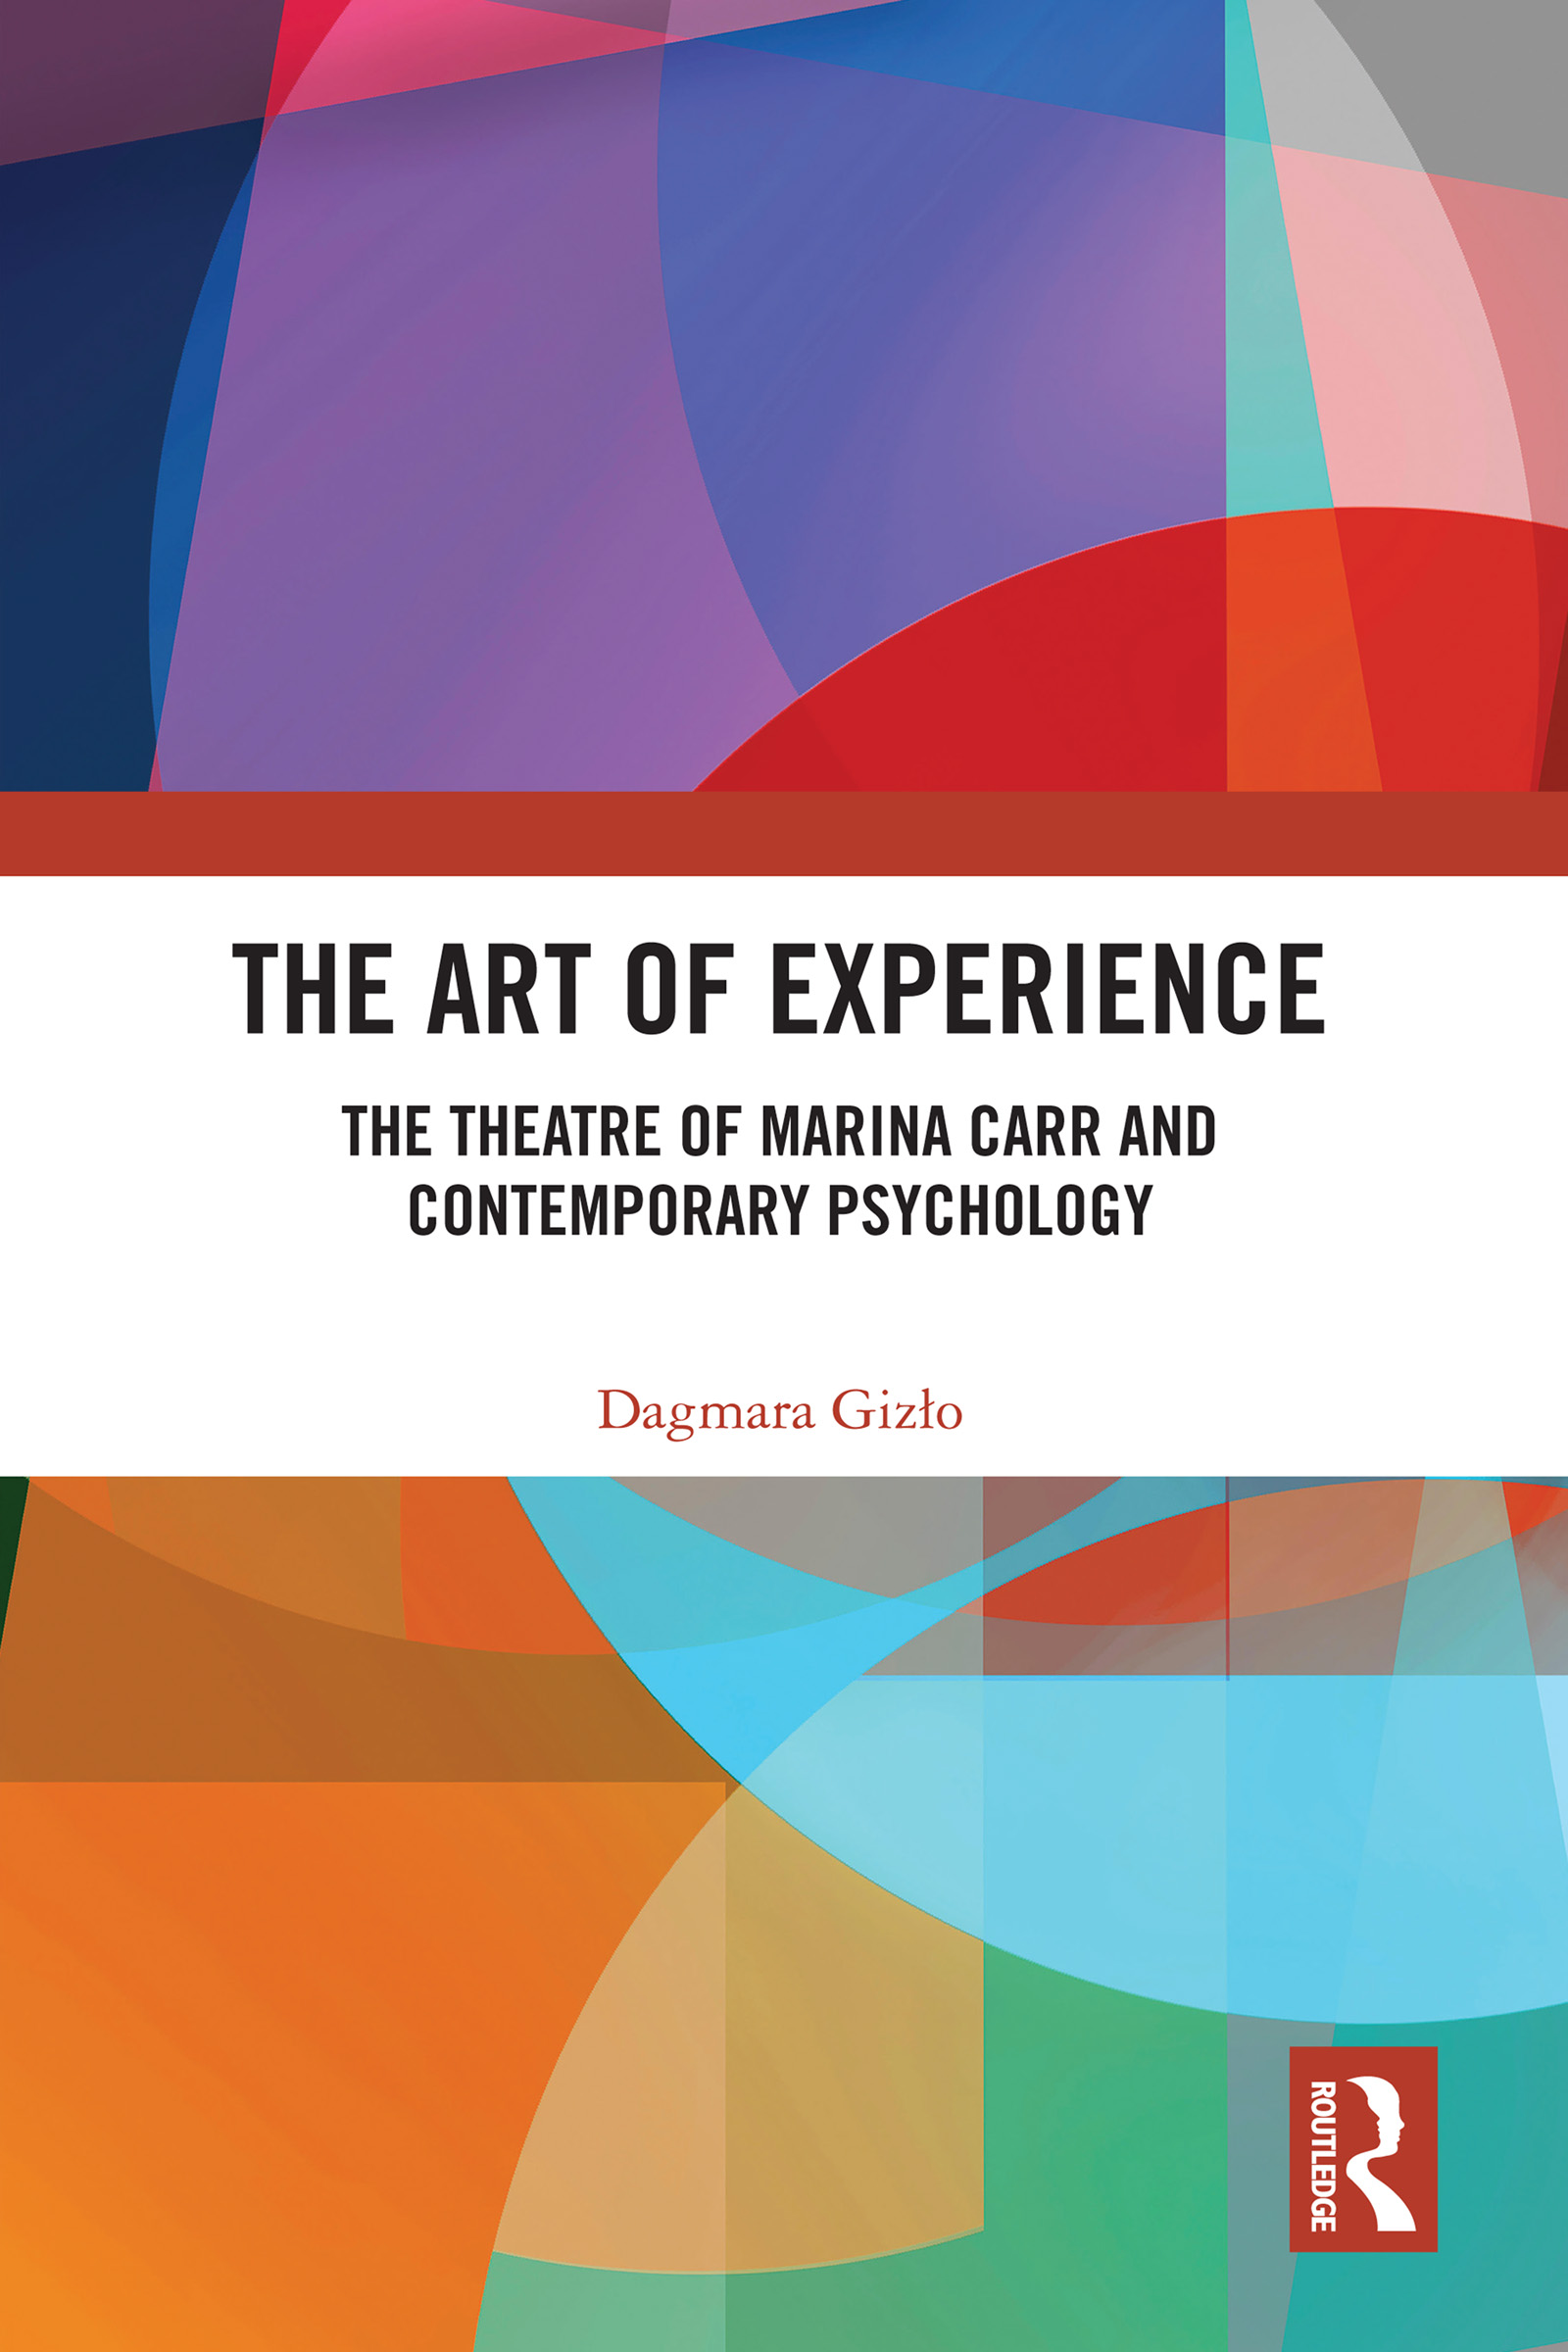 The Art of Experience